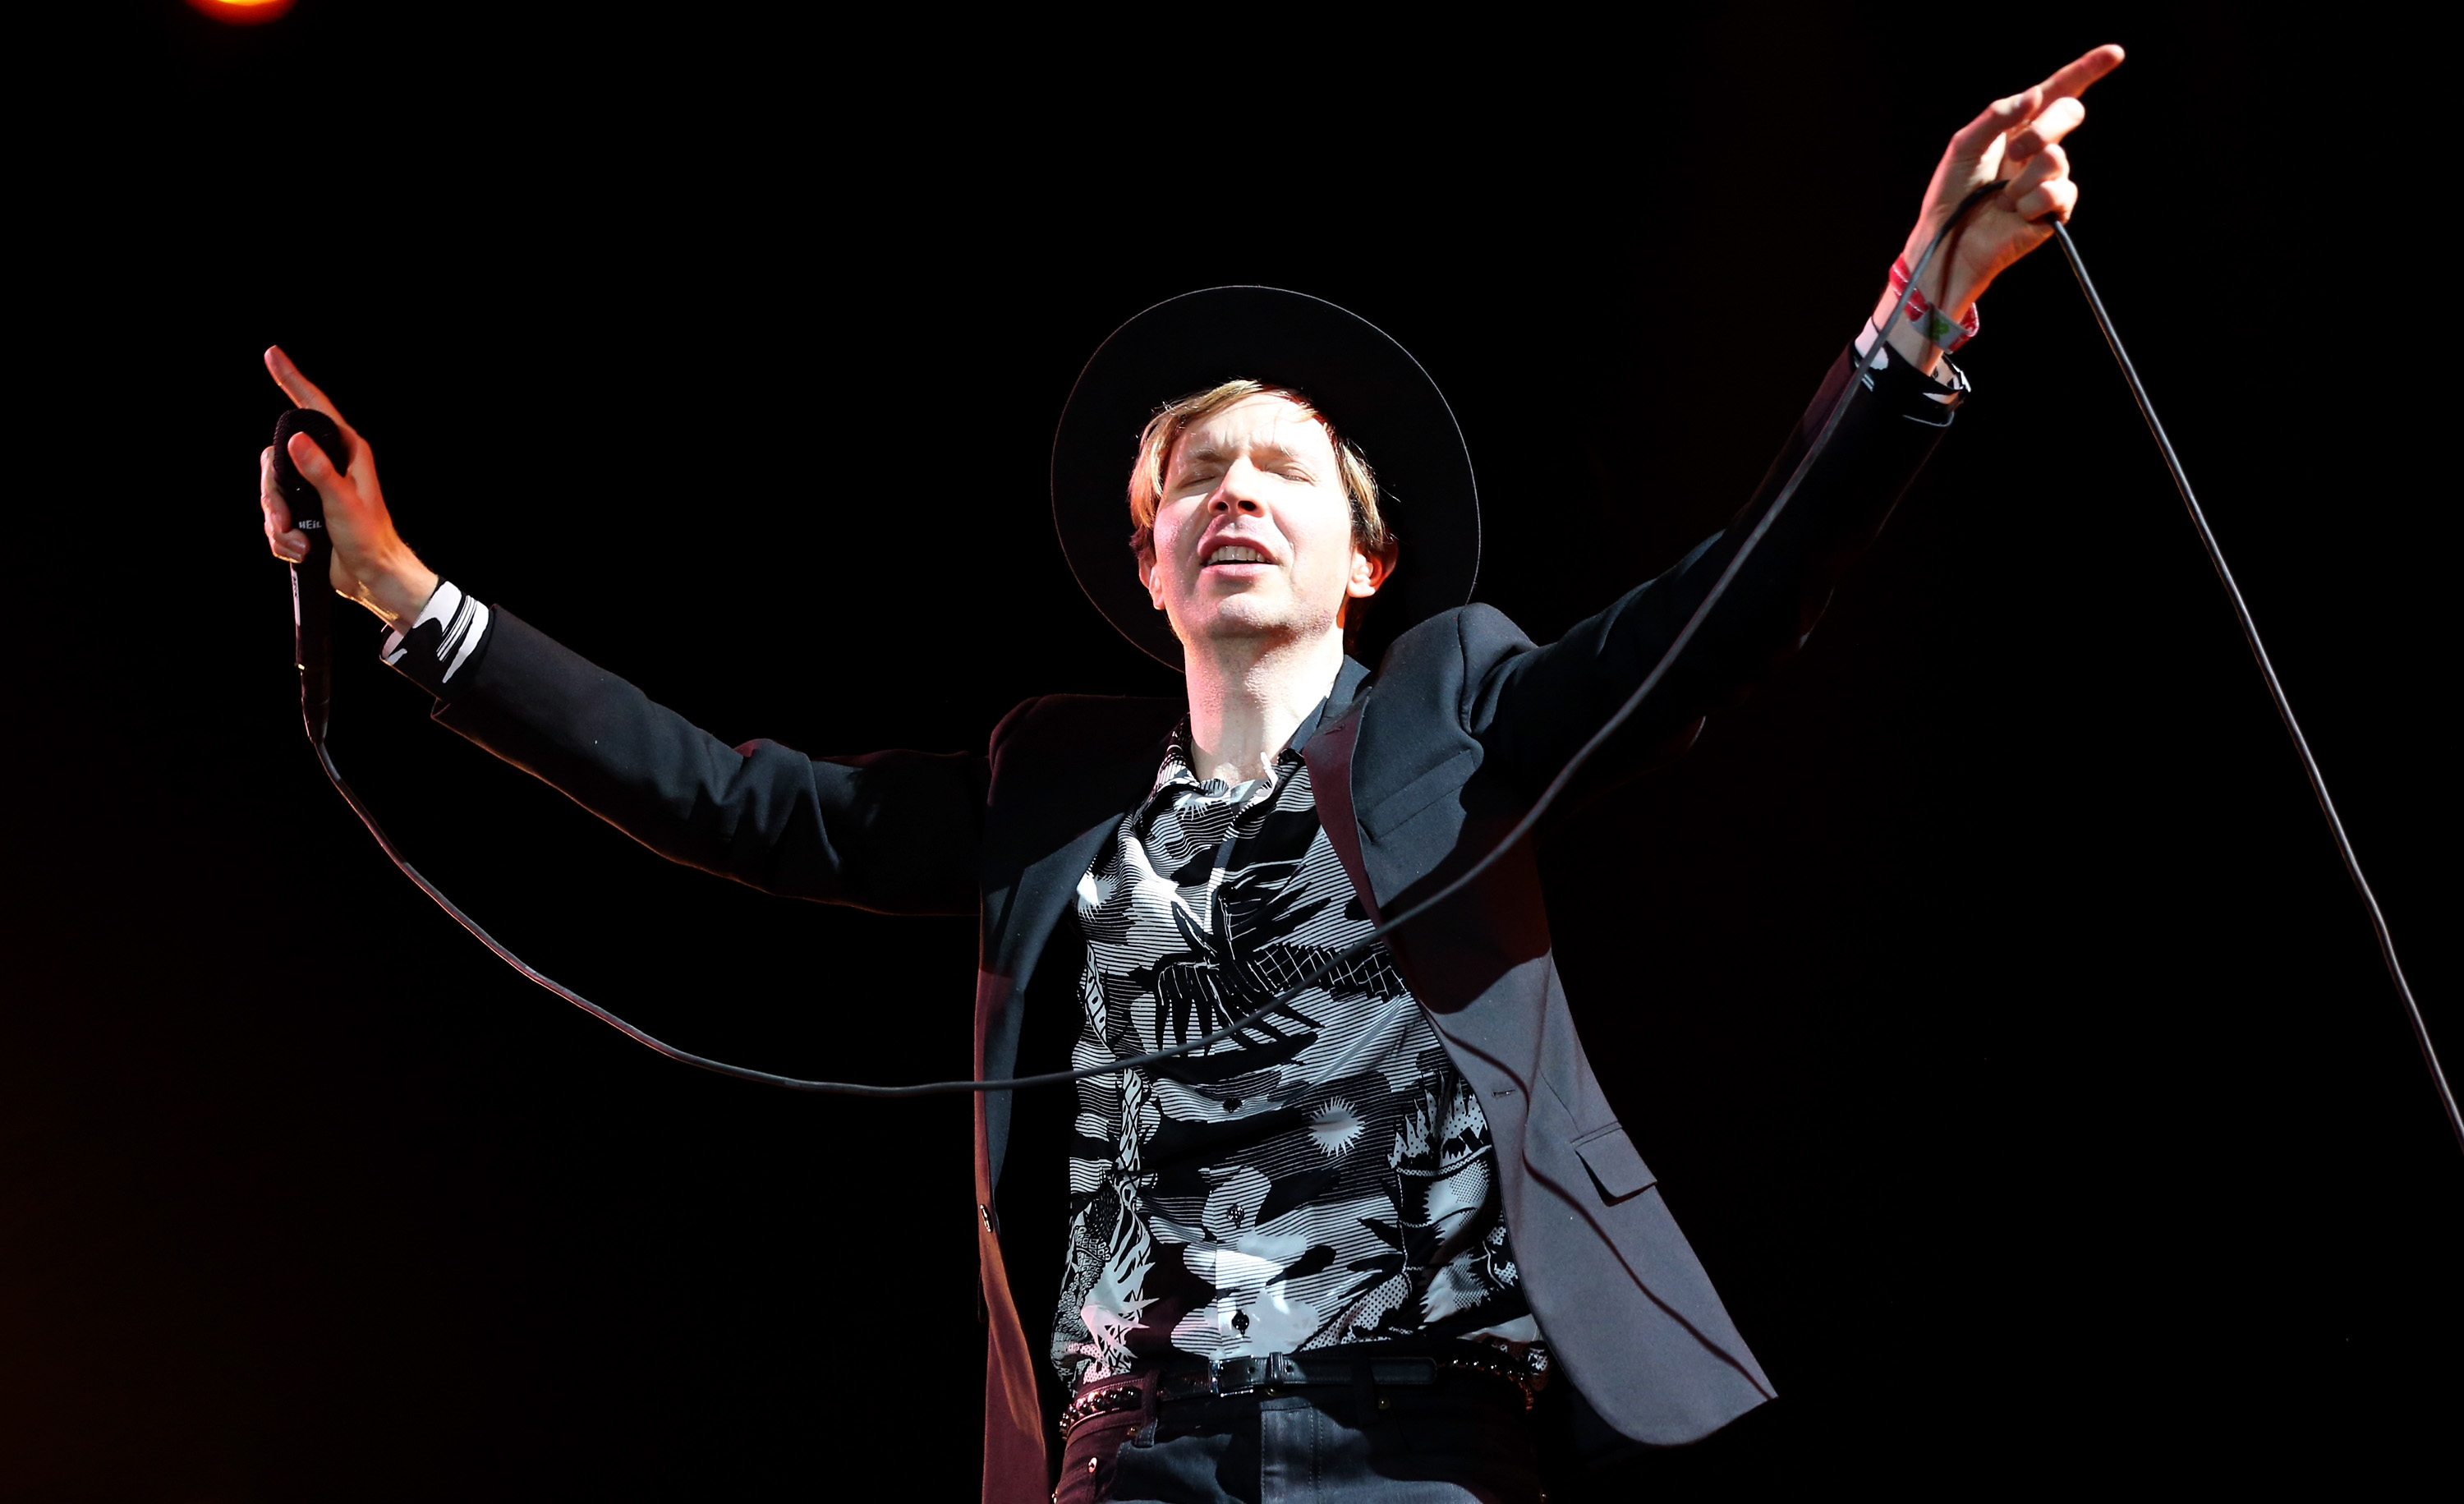 Musician Beck performs onstage during day 3 of the 2014 Coachella Valley Music & Arts Festival at the Empire Polo Club on April 20, 2014 in Indio, California.